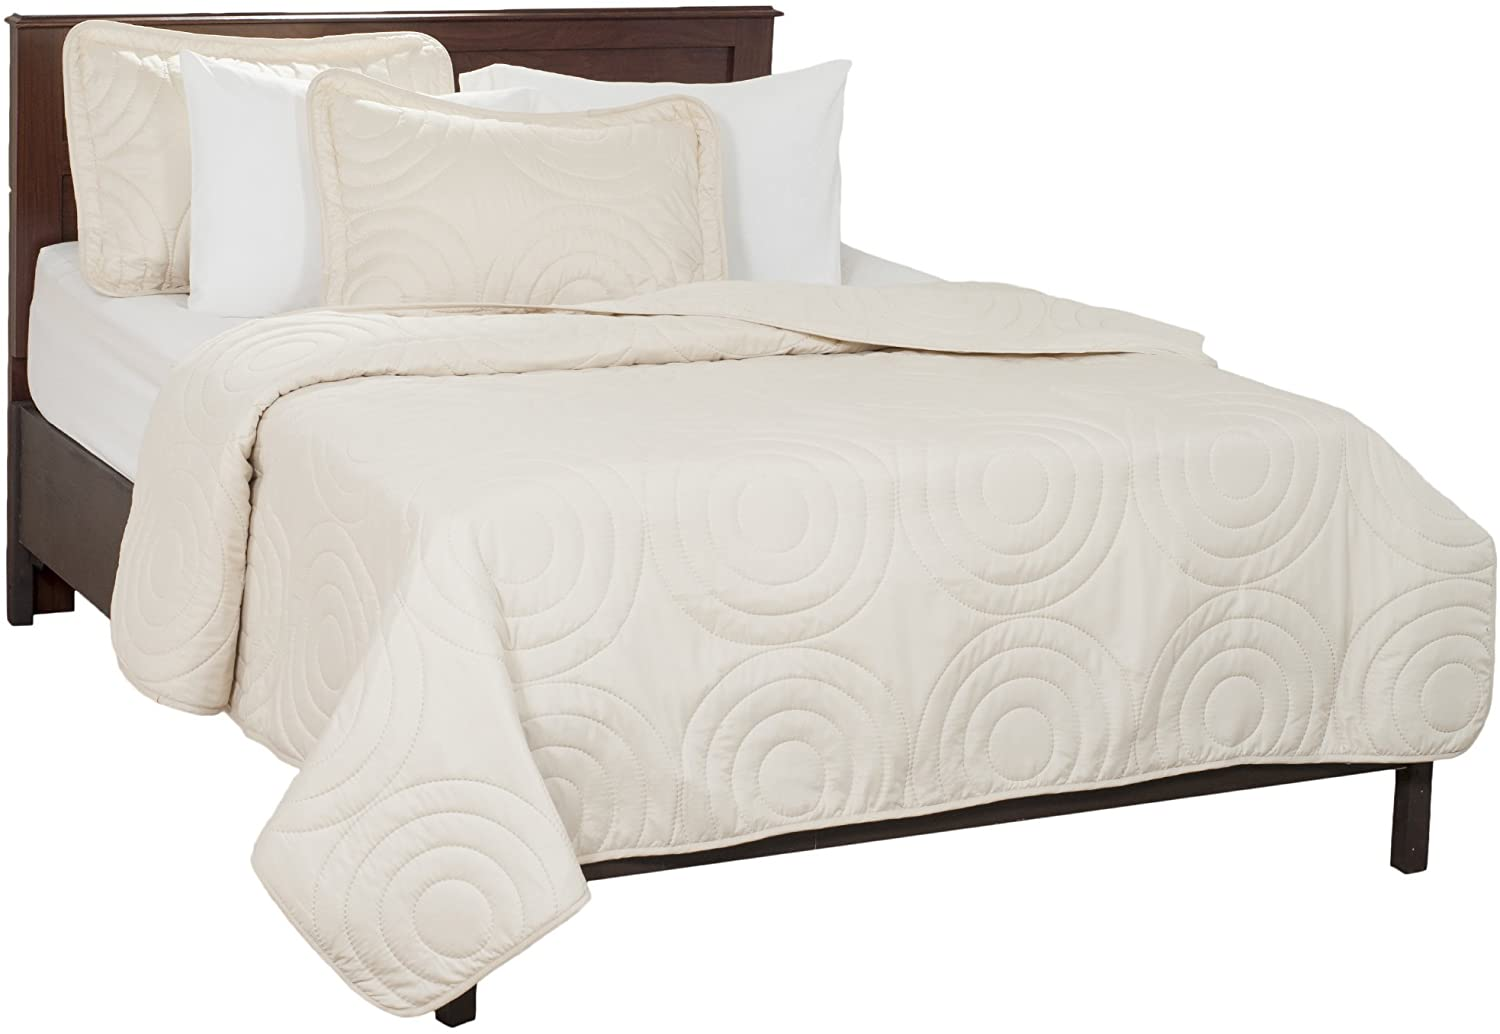 Lavish Home Solid Embossed 3 Piece Quilt Set - Full/Queen - Ivory